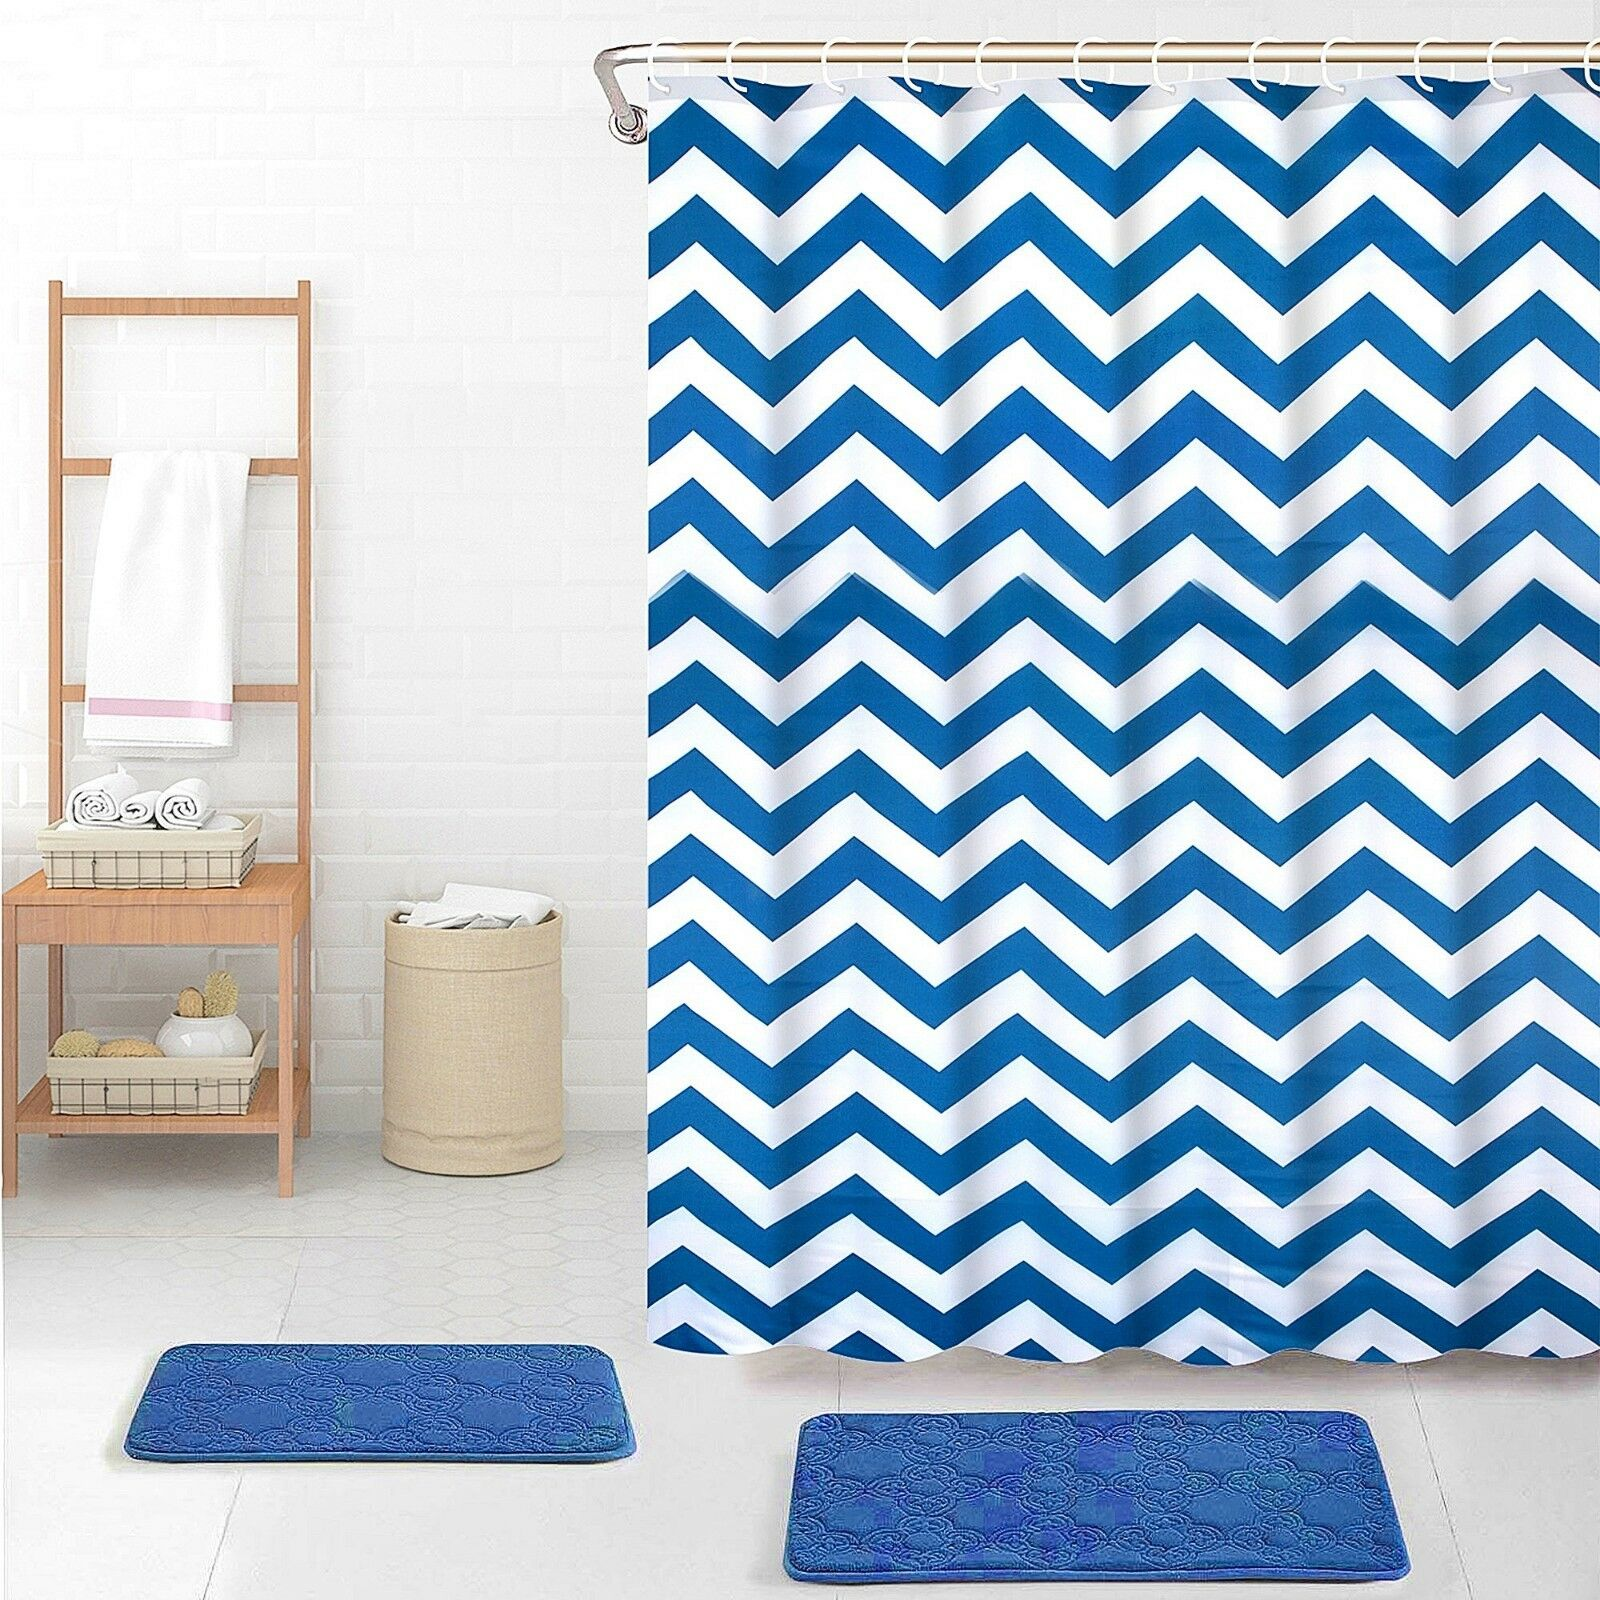 Waterline Printed Bathroom Shower Curtain 180cm x 180cm - Blue ZigZag